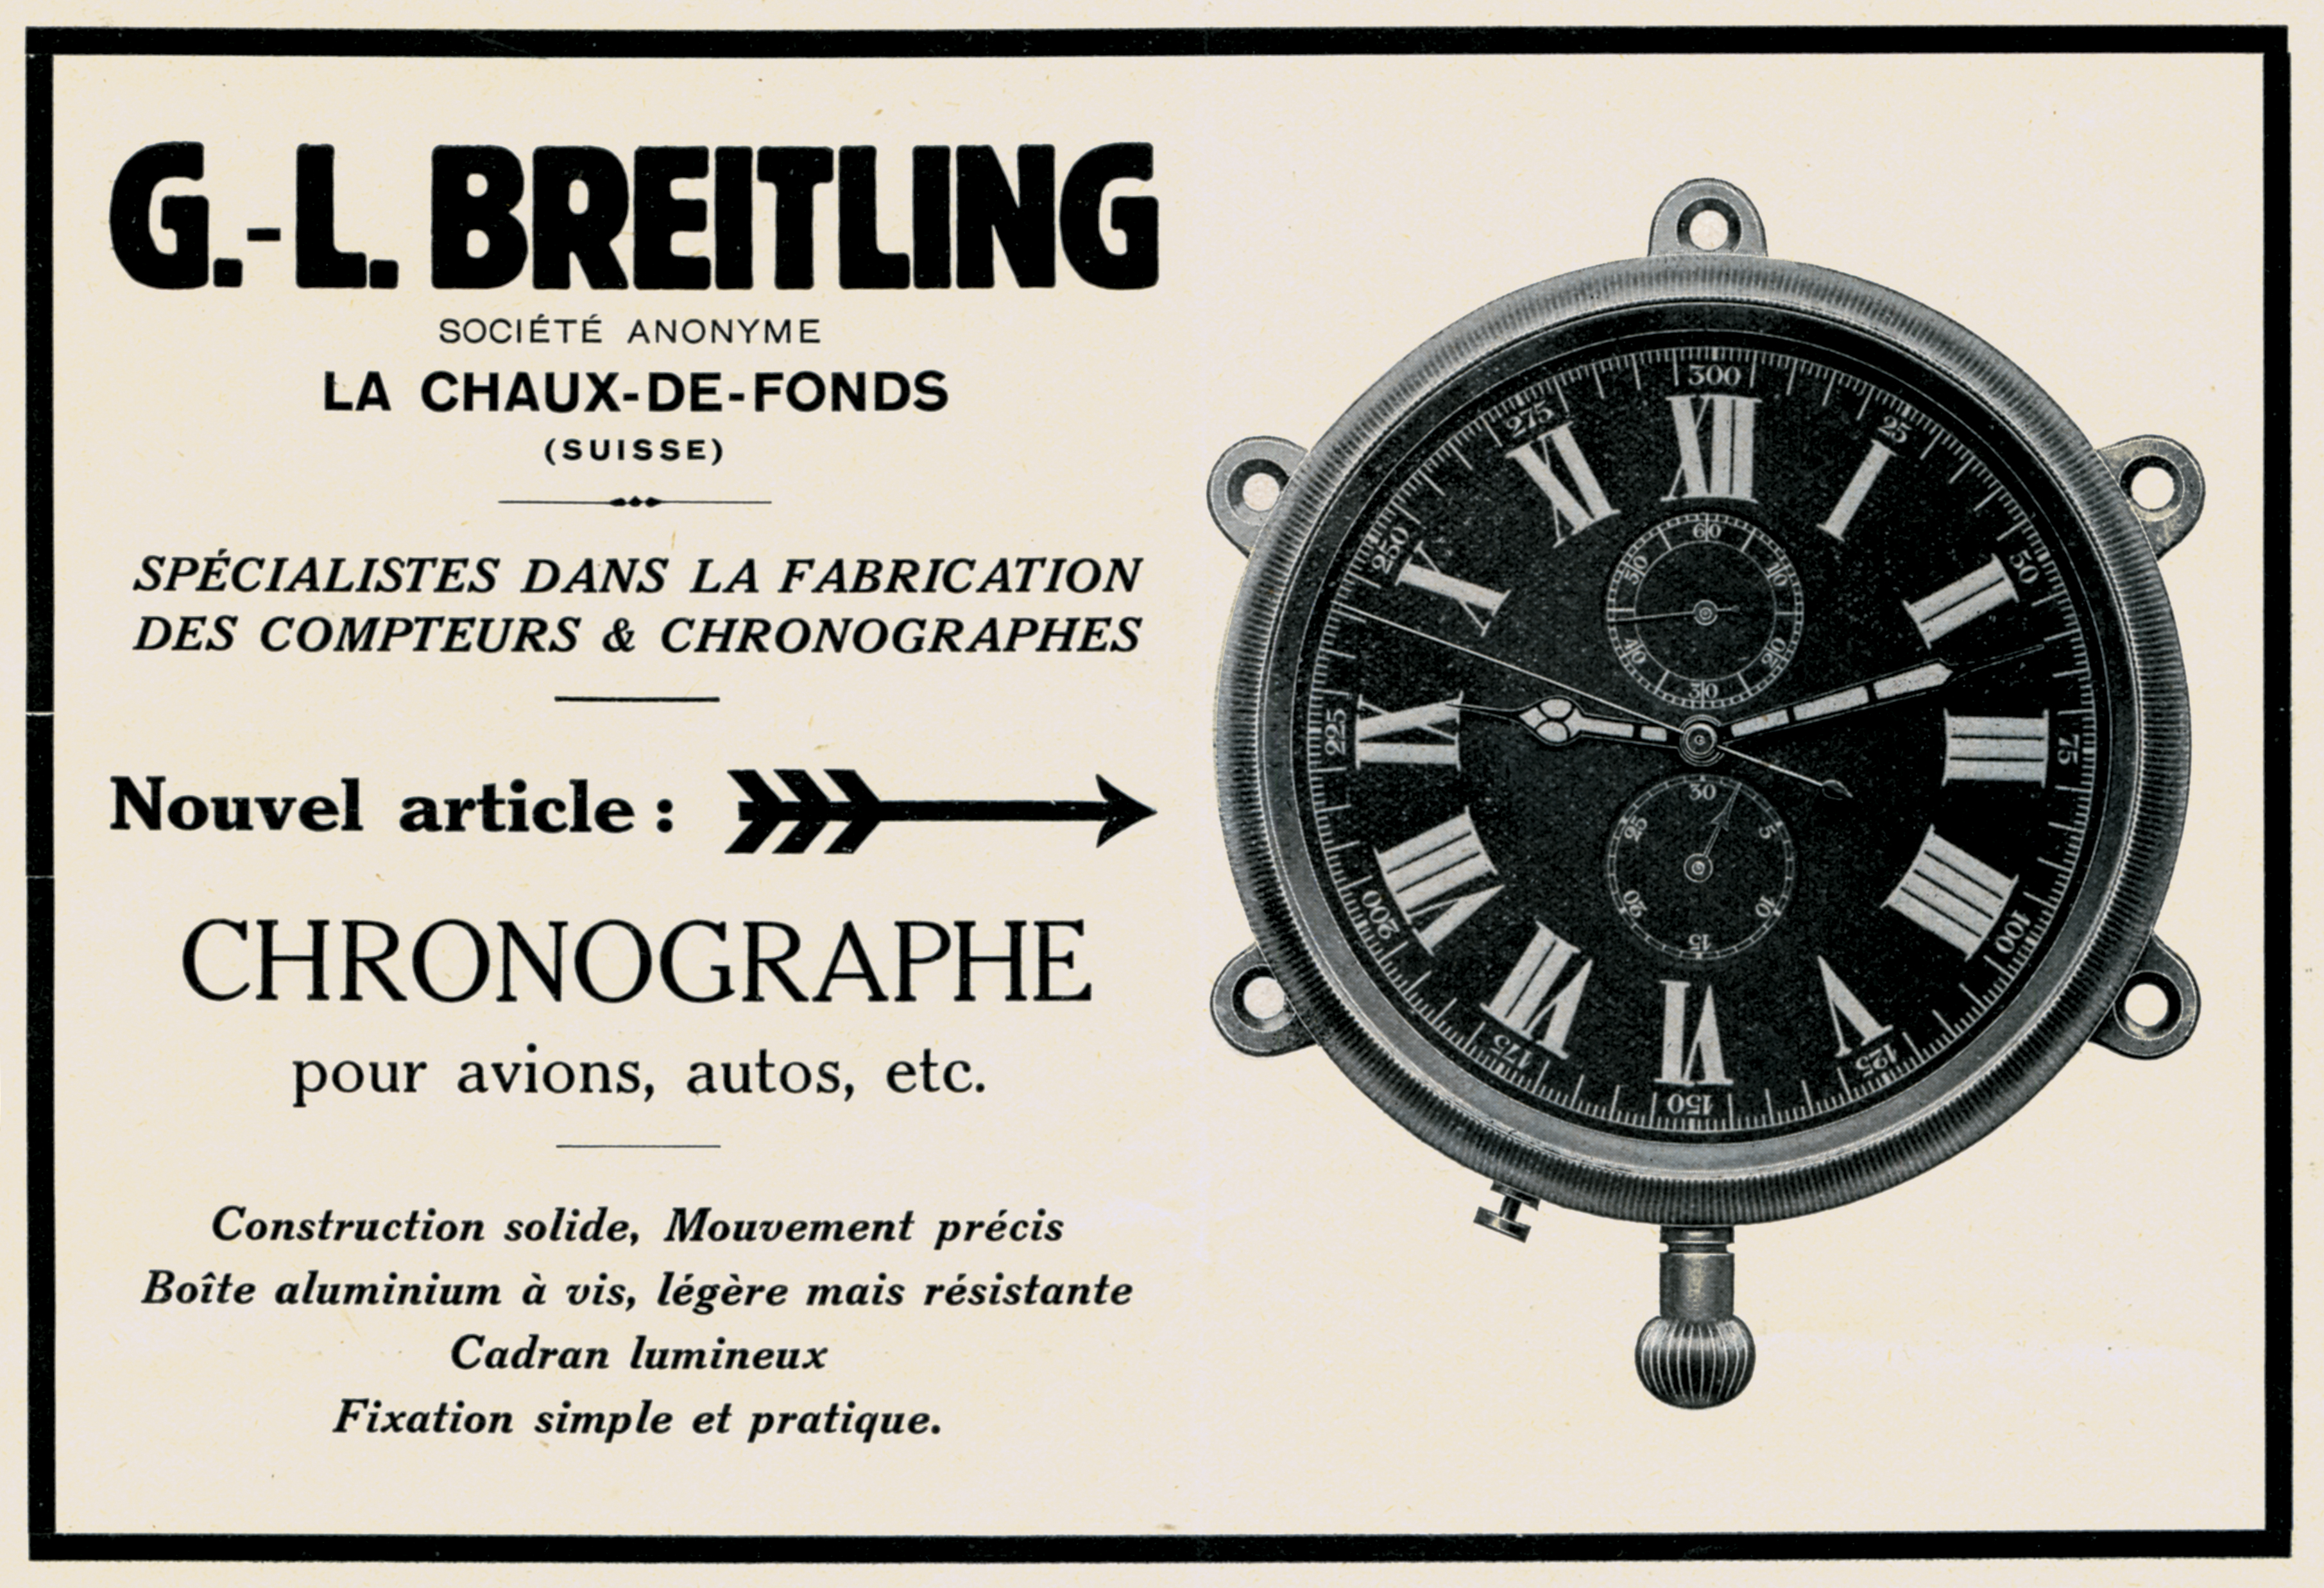 An advertisement from 1931 for an onboard chronograph made for aircraft or automobiles